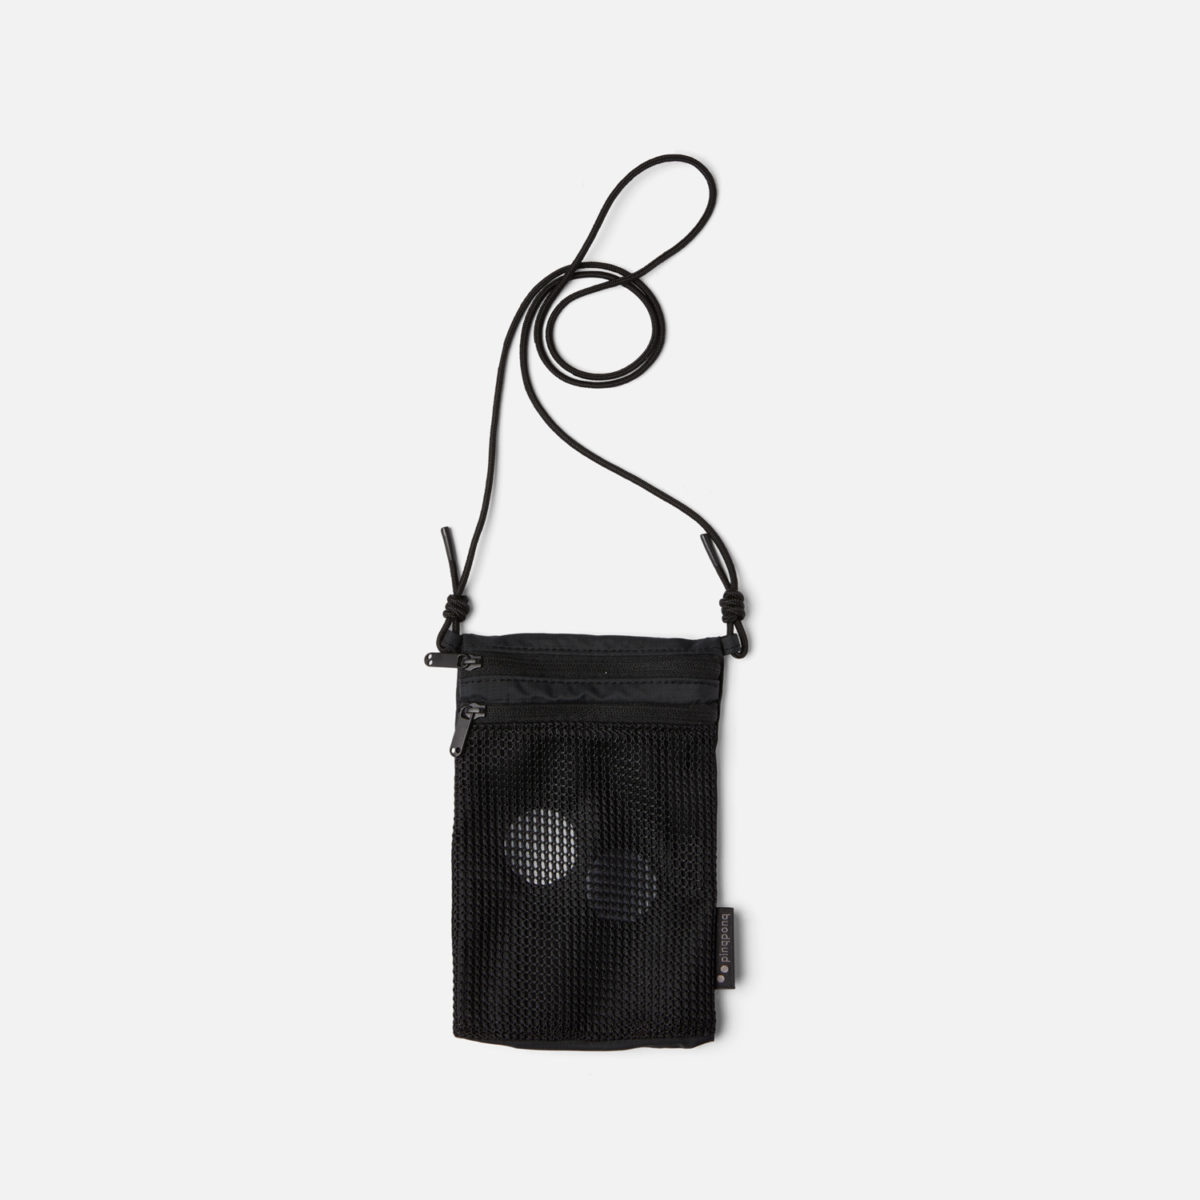 Pinqponq Flak Hip Bag Small Black Vegan